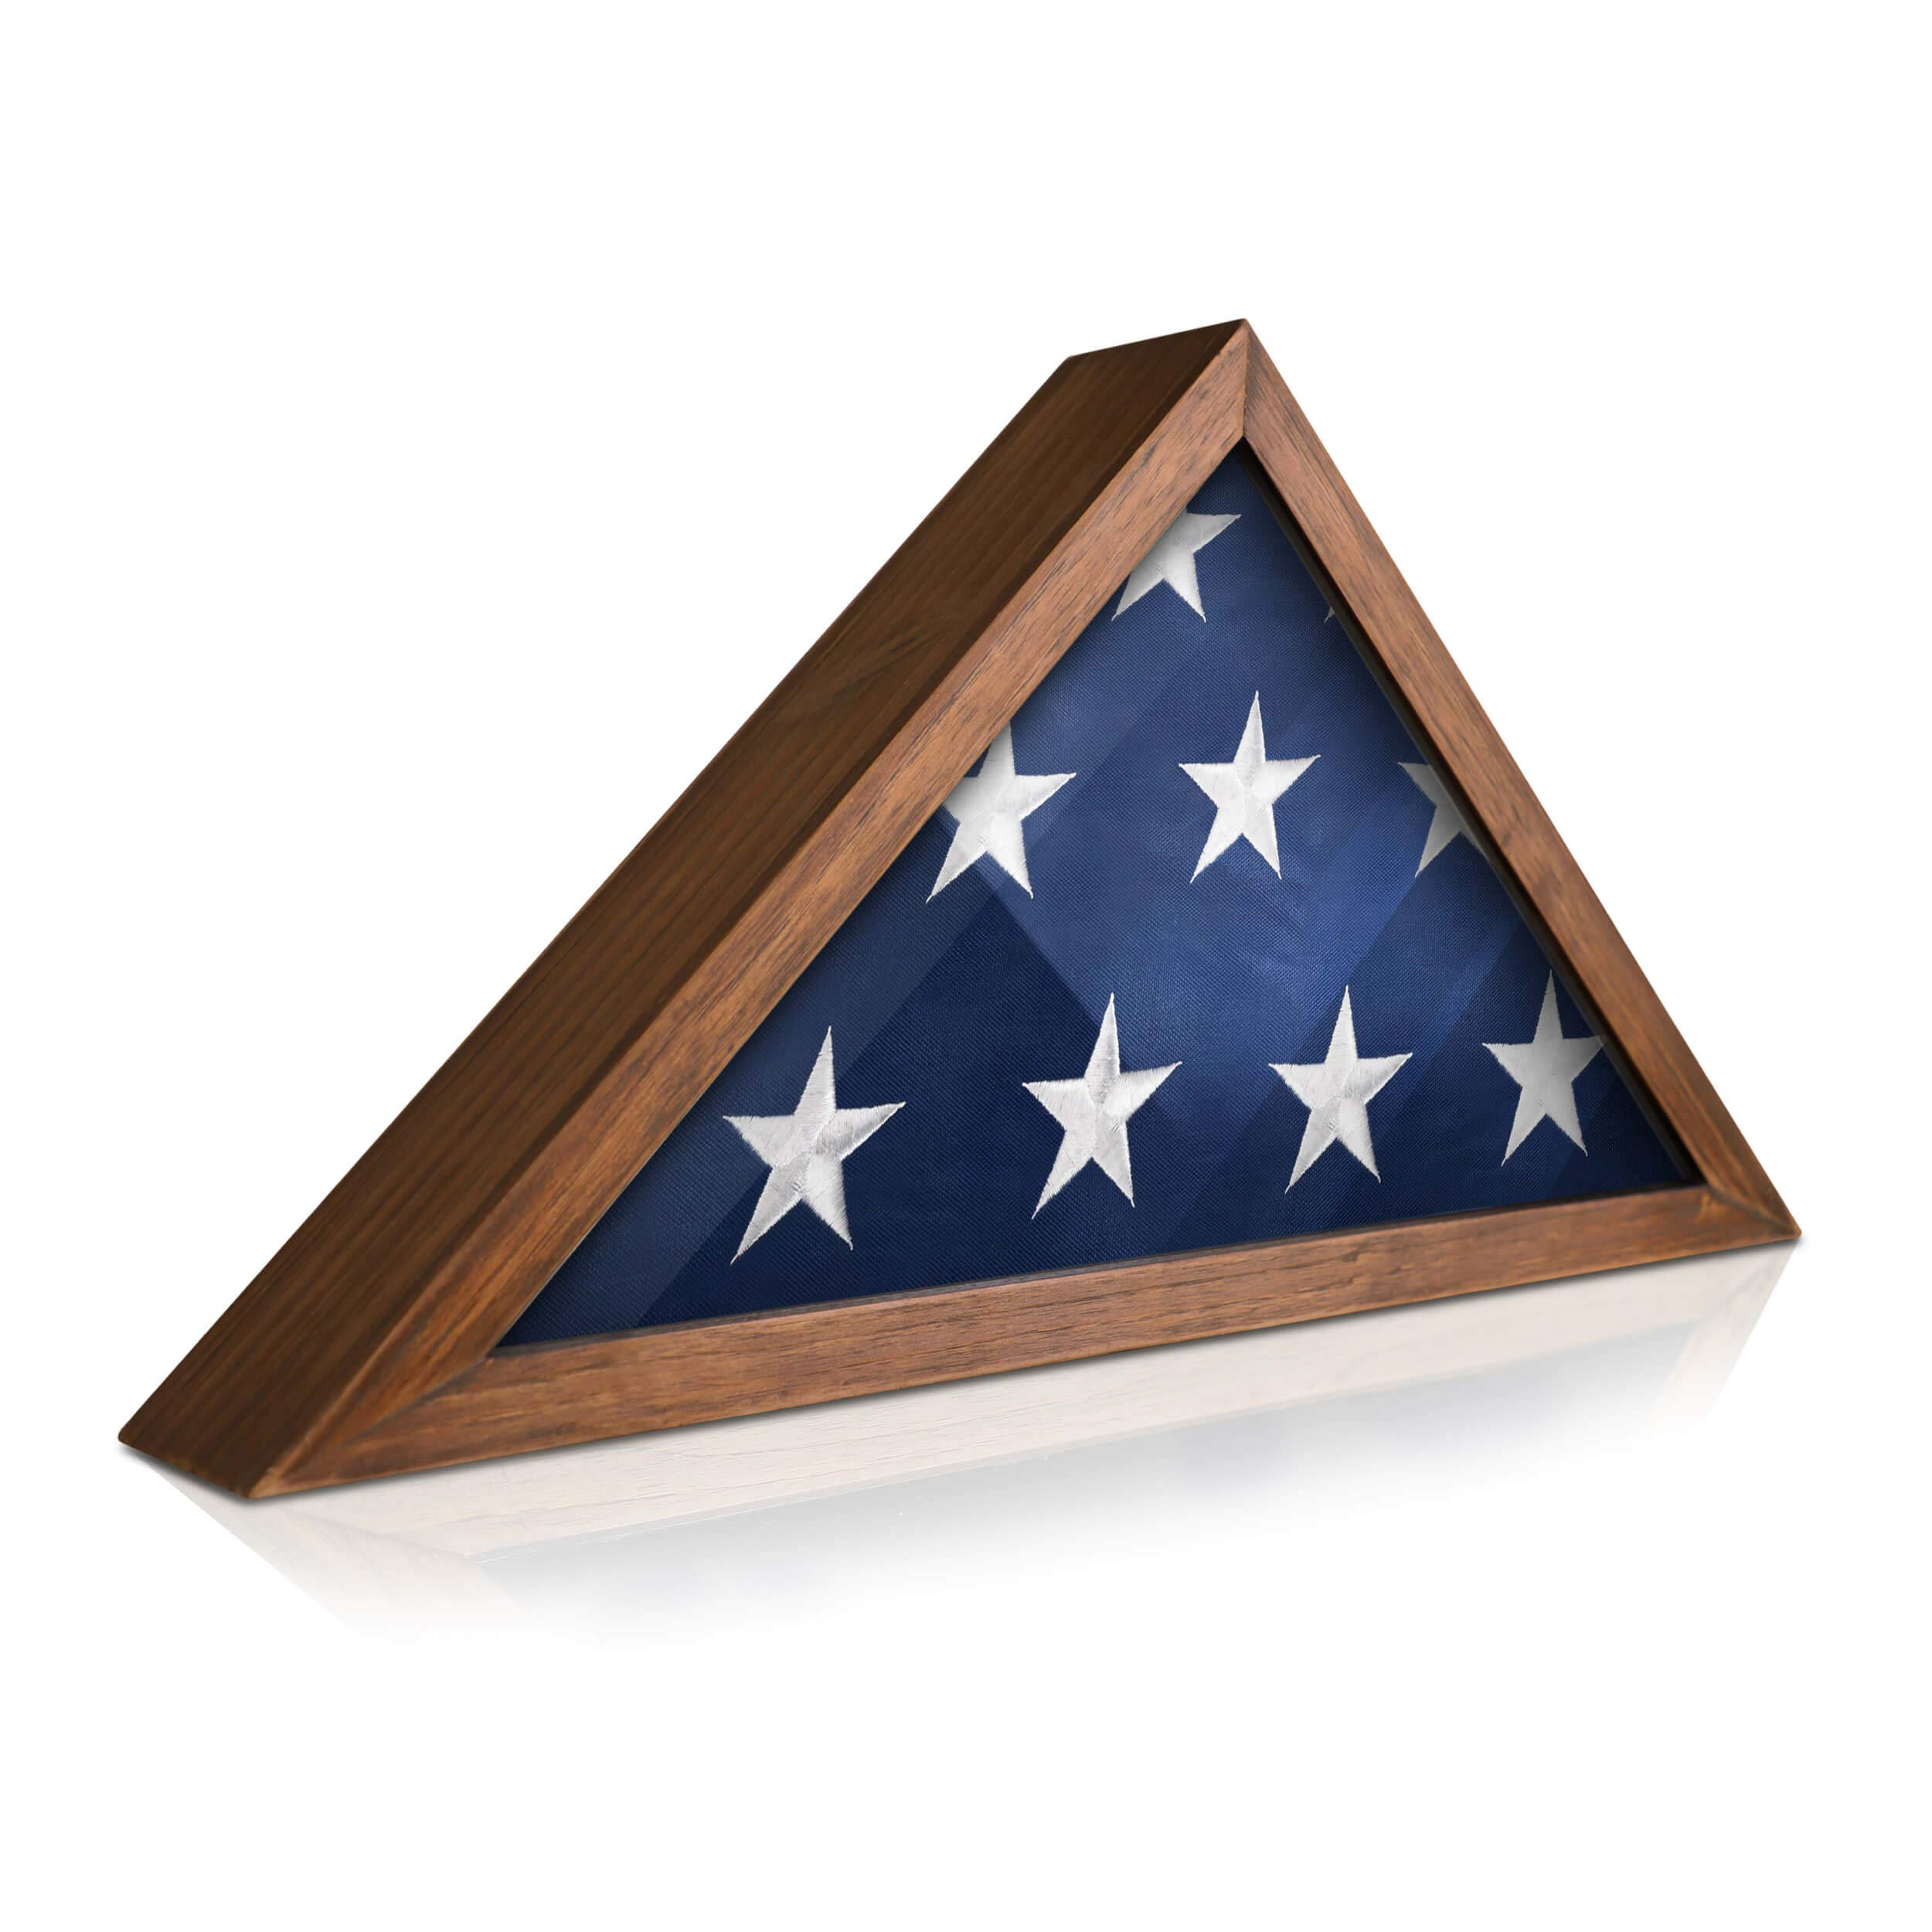 HBCY Creations Rustic Flag Case - Solid Wood Military Flag Display Case for 9.5 x 5 American Veteran Burial Flag, Wall Mounted Burial Flag Frame - Flag Shadow Box to Display Folded Flag(Rustic Brown) by HBCY Creations